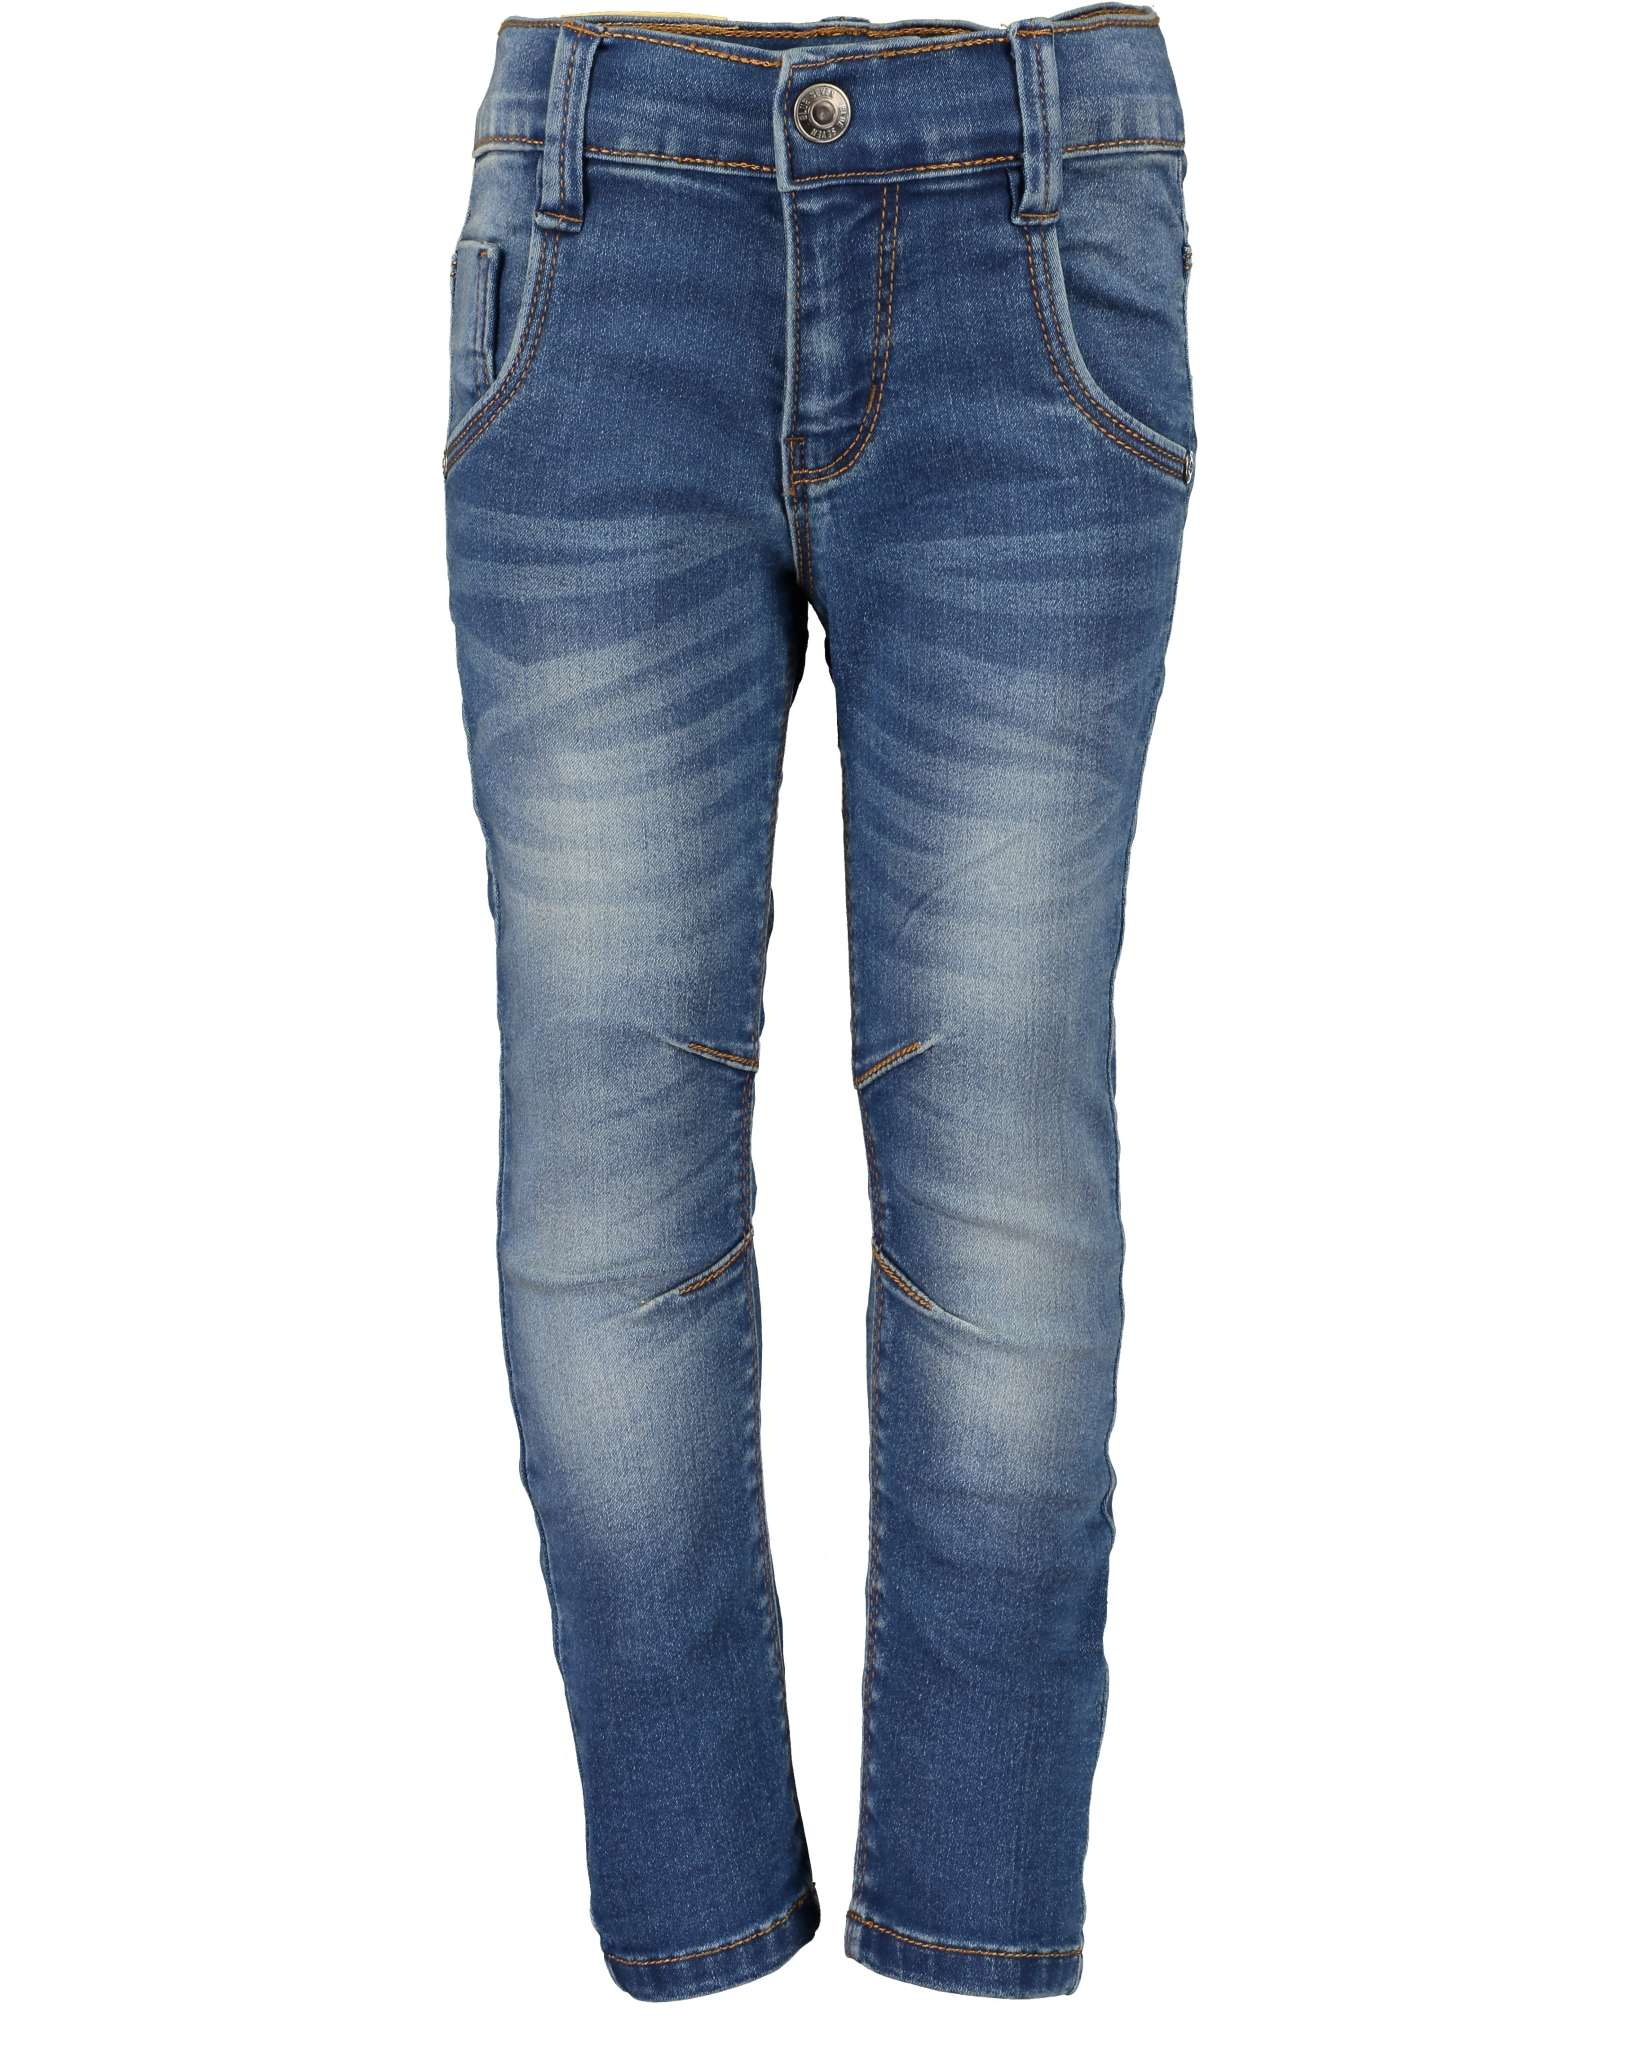 Jeans 092 denim Blue Seven